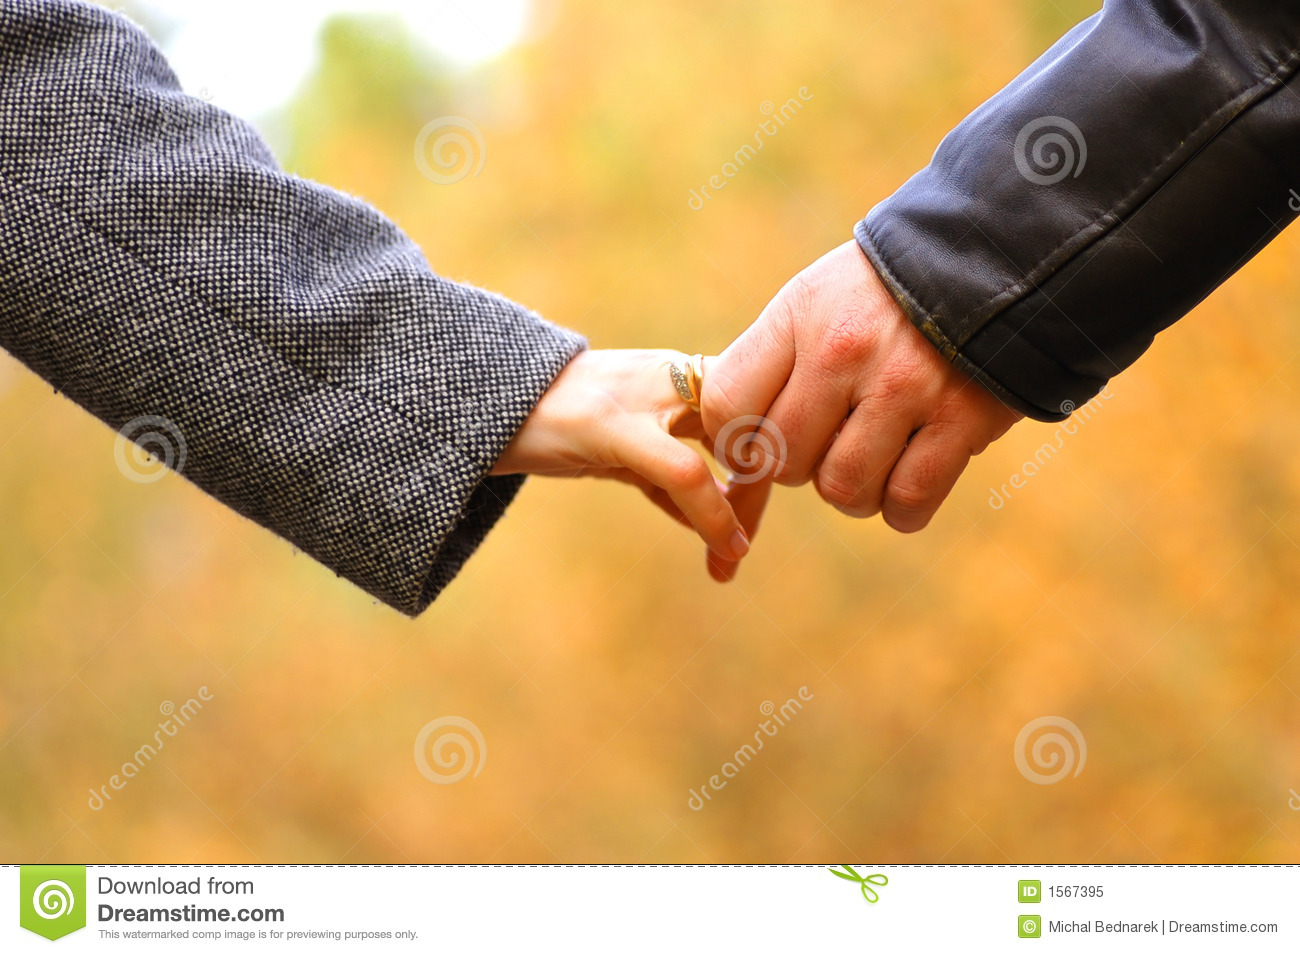 Hand-in-hand Royalty Free Stock Photo - Image: 1567395